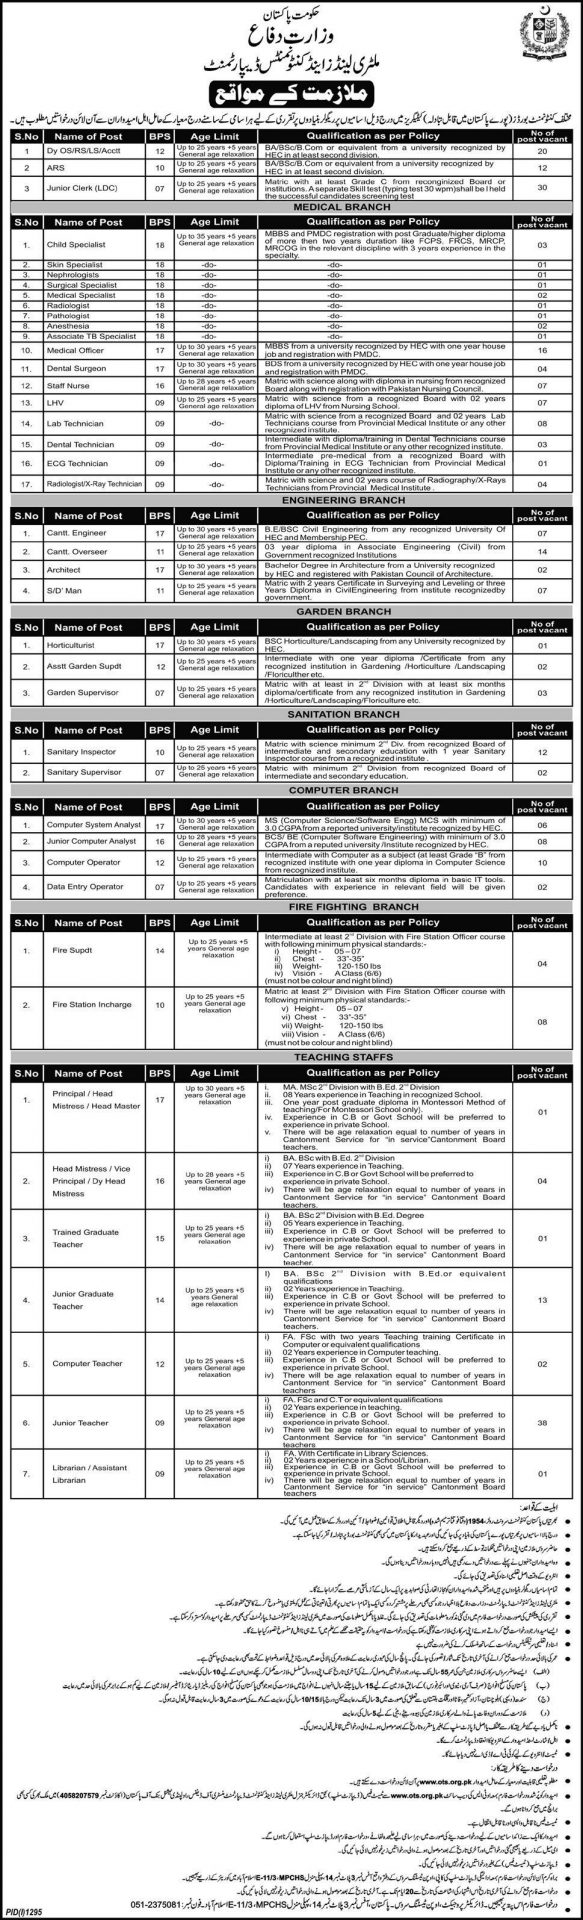 Military Lands And Cantonments Department Jobs 2015 OTS Form Ots.org.pk